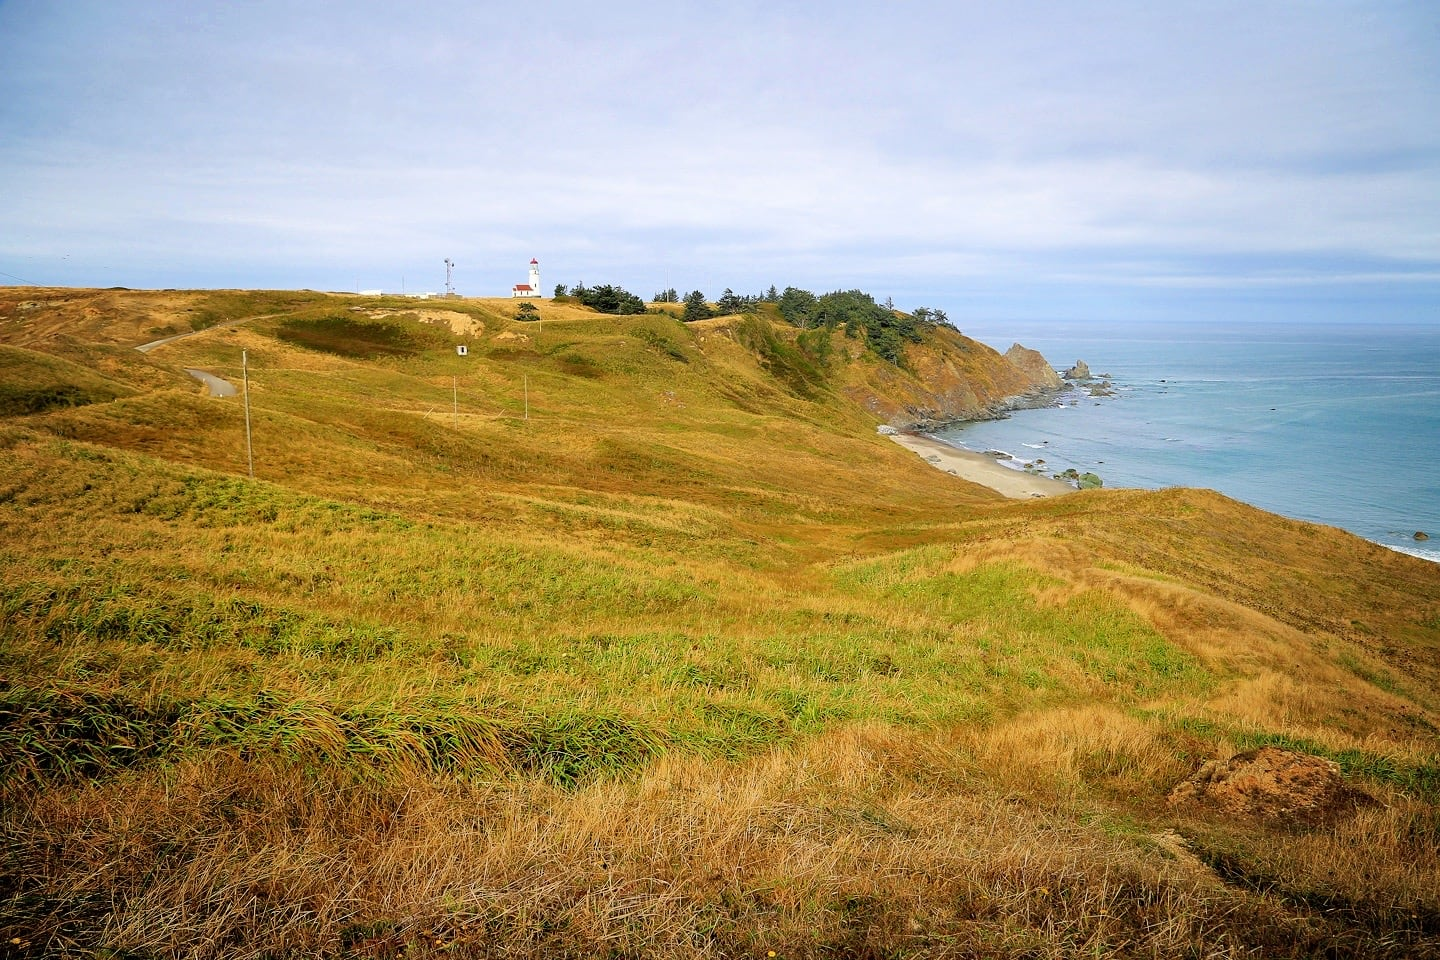 Cape Blanco Lighthouse on bluff overlooking ocean